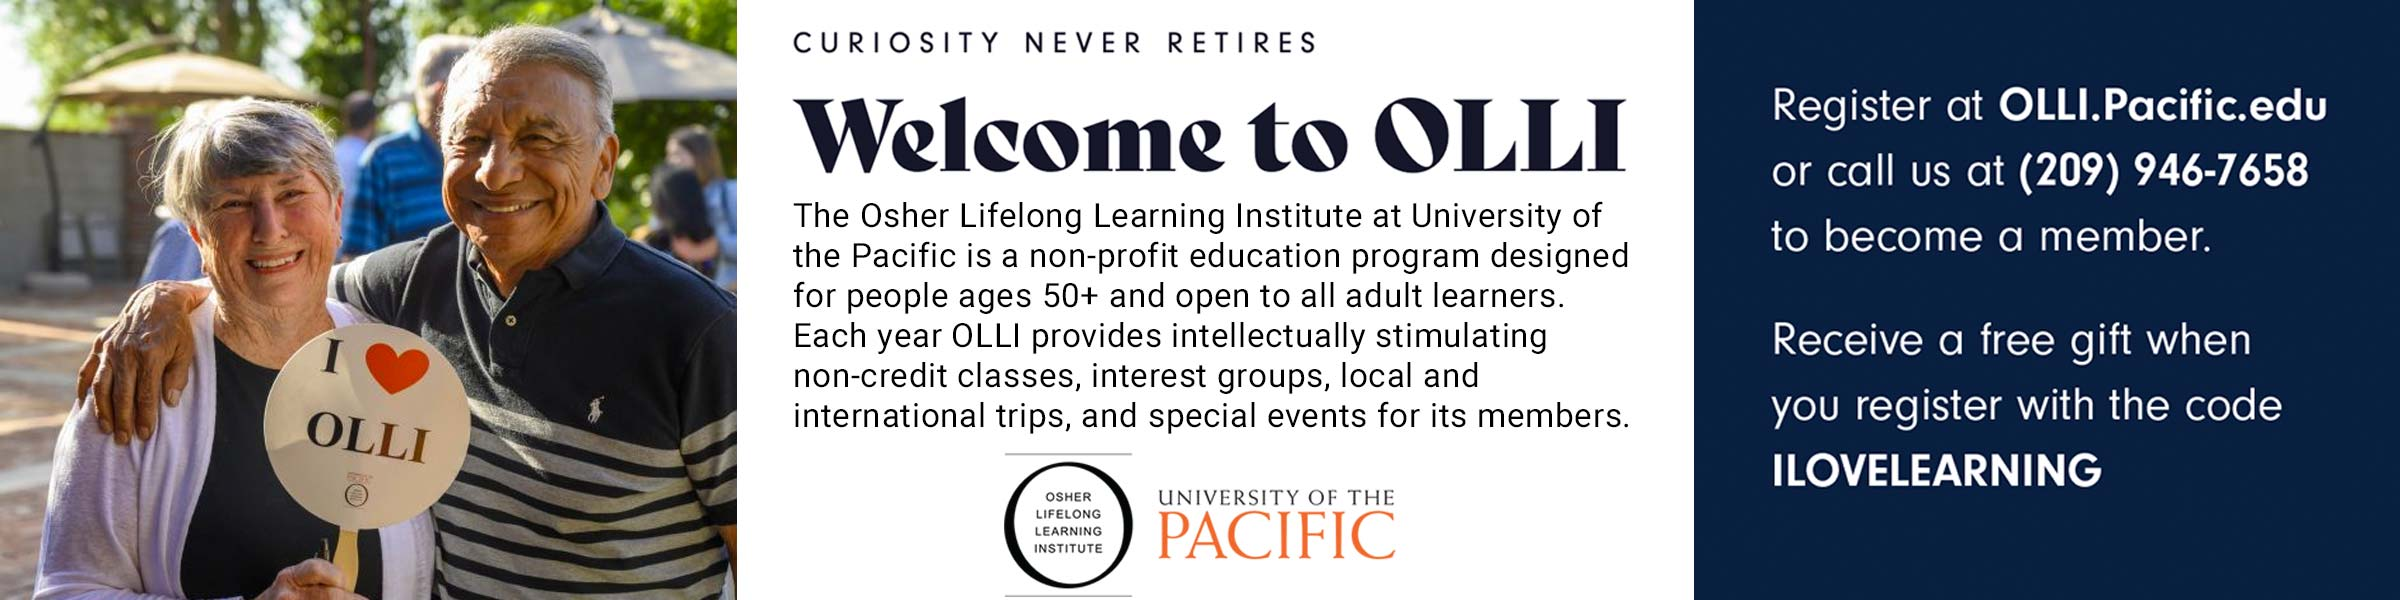 Education Doesn't End at Graduation - Osher Lifelong Learning Institute (OLLI) at University of the Pacific